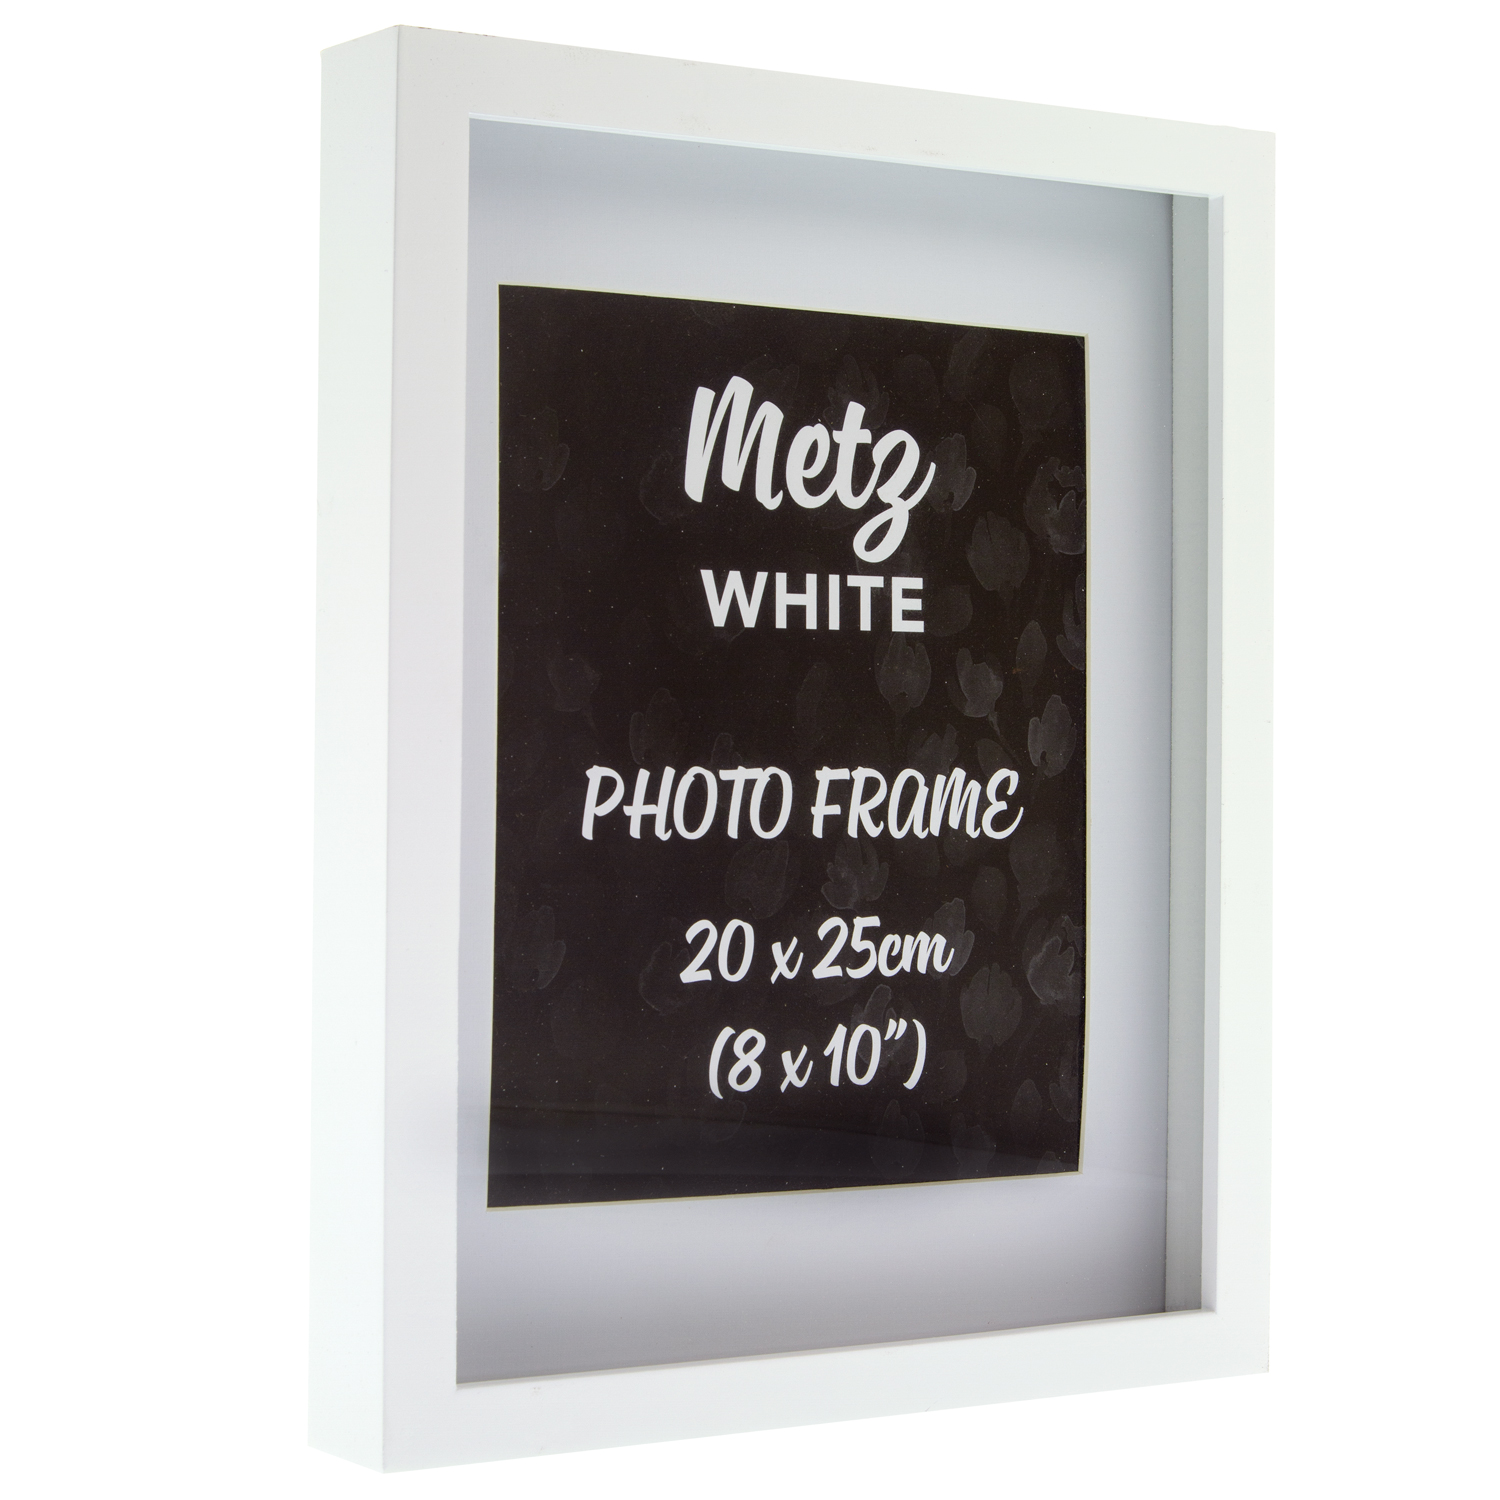 Metz White Frame 8 X 10 Home Store More